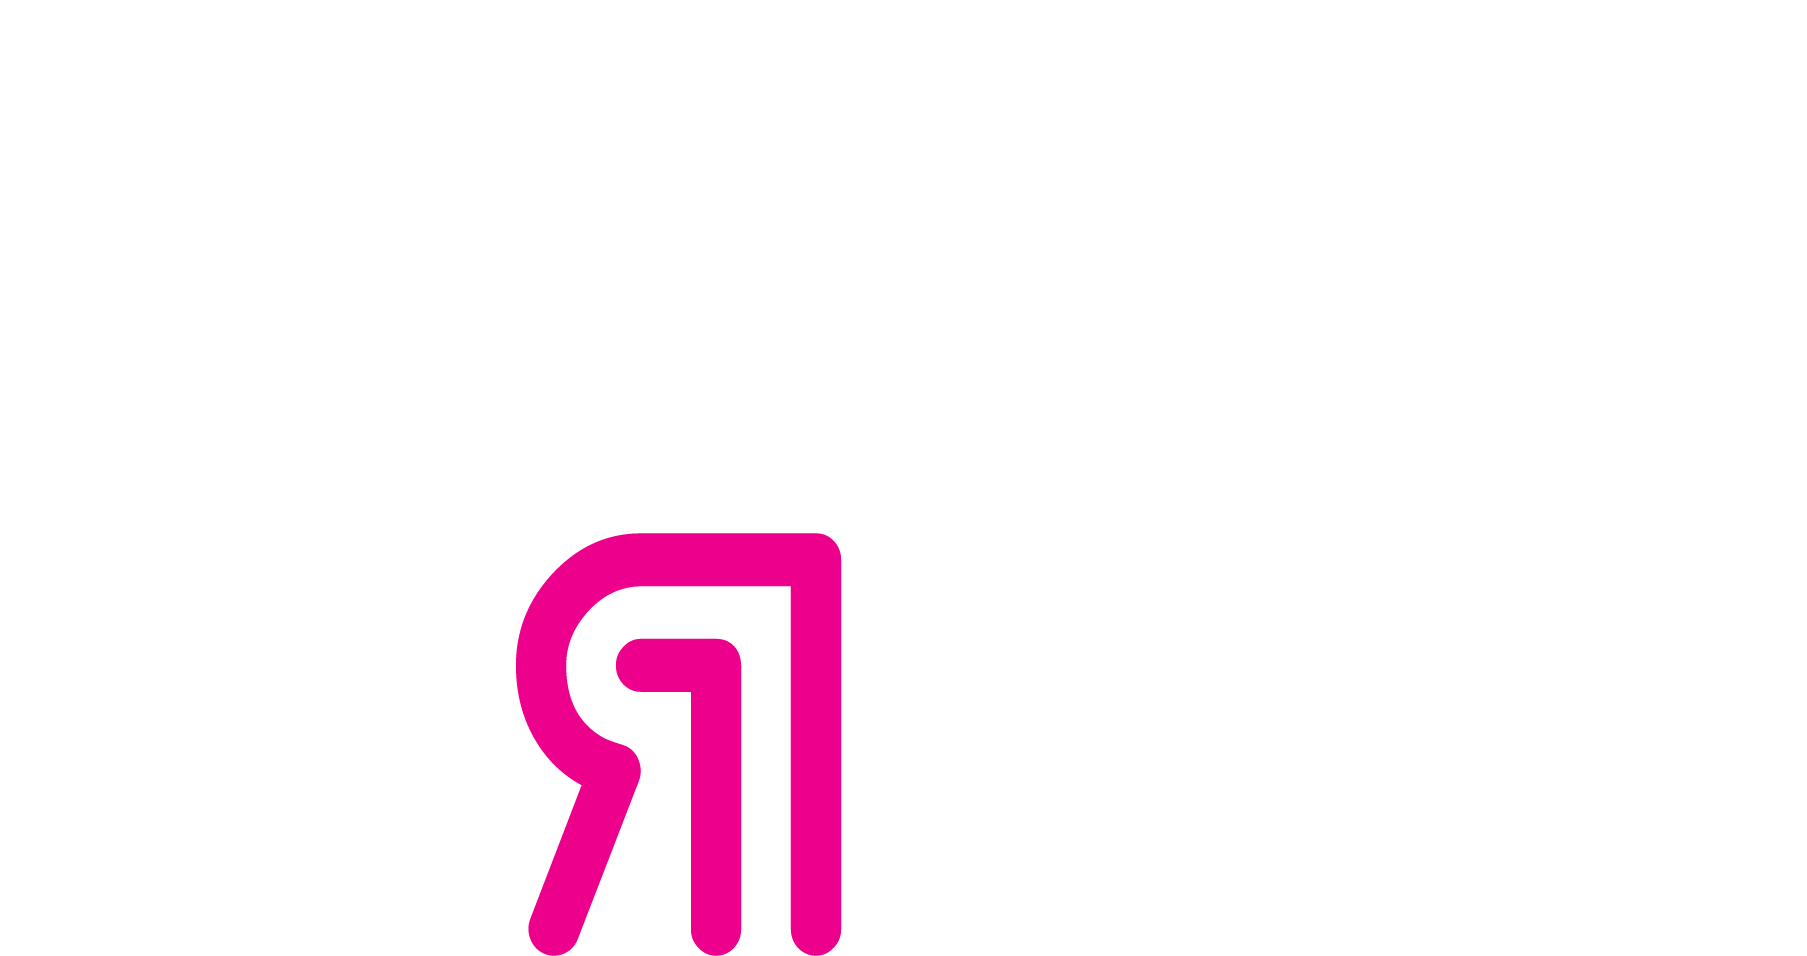 Mind trap text white with pink accent